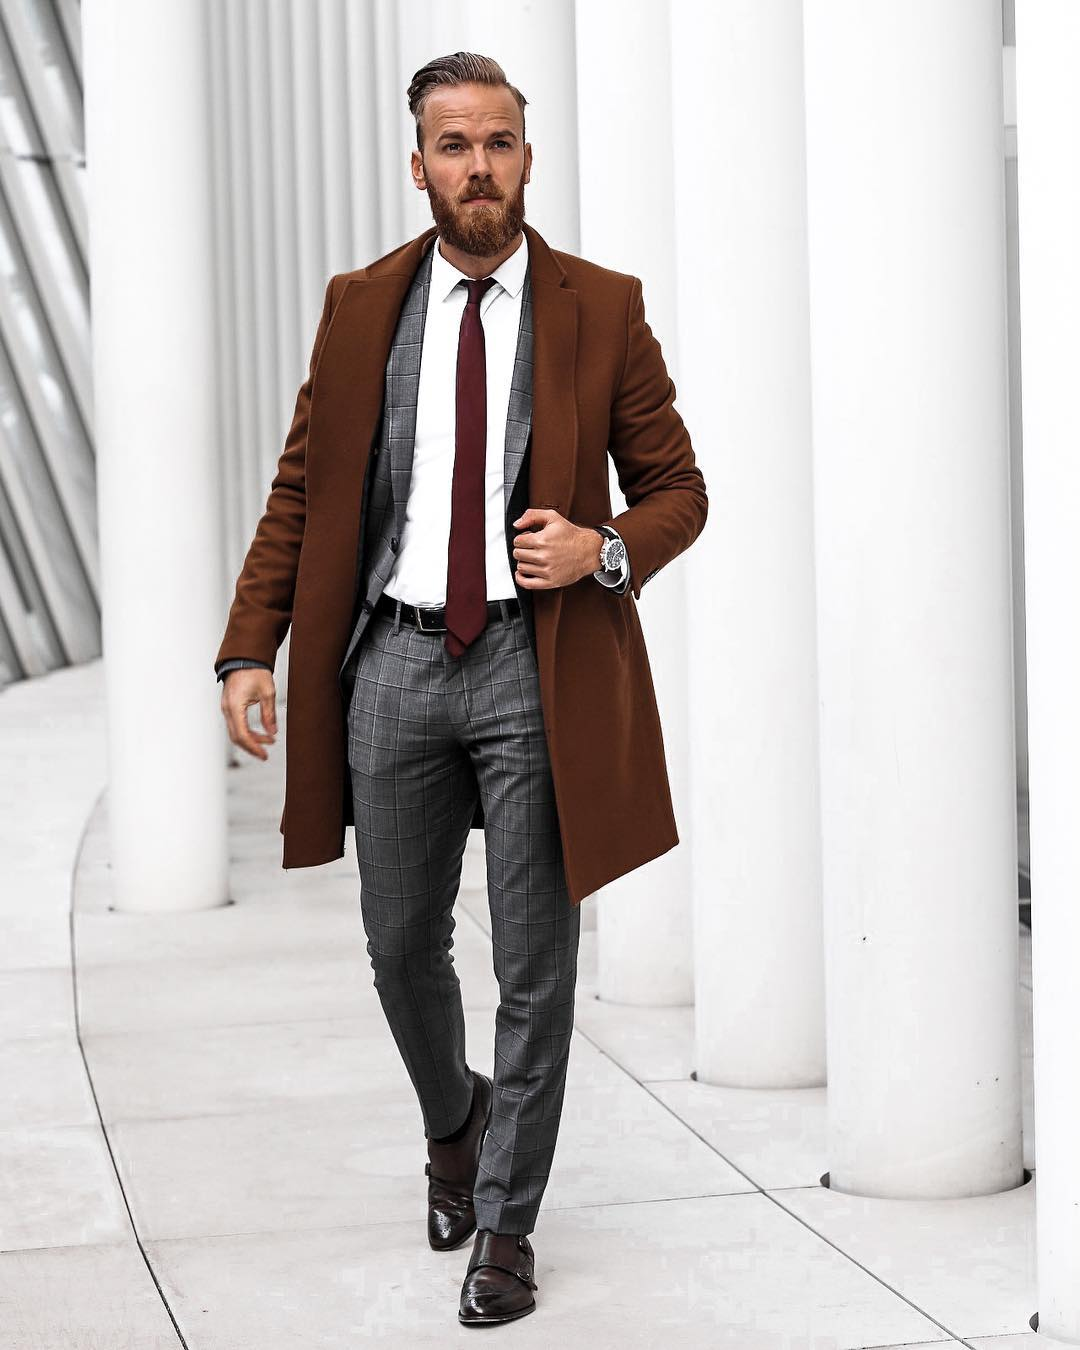 5 Formal Outfits To Look Sharp For Men #formaloutfits #mensfashion #streetstyle